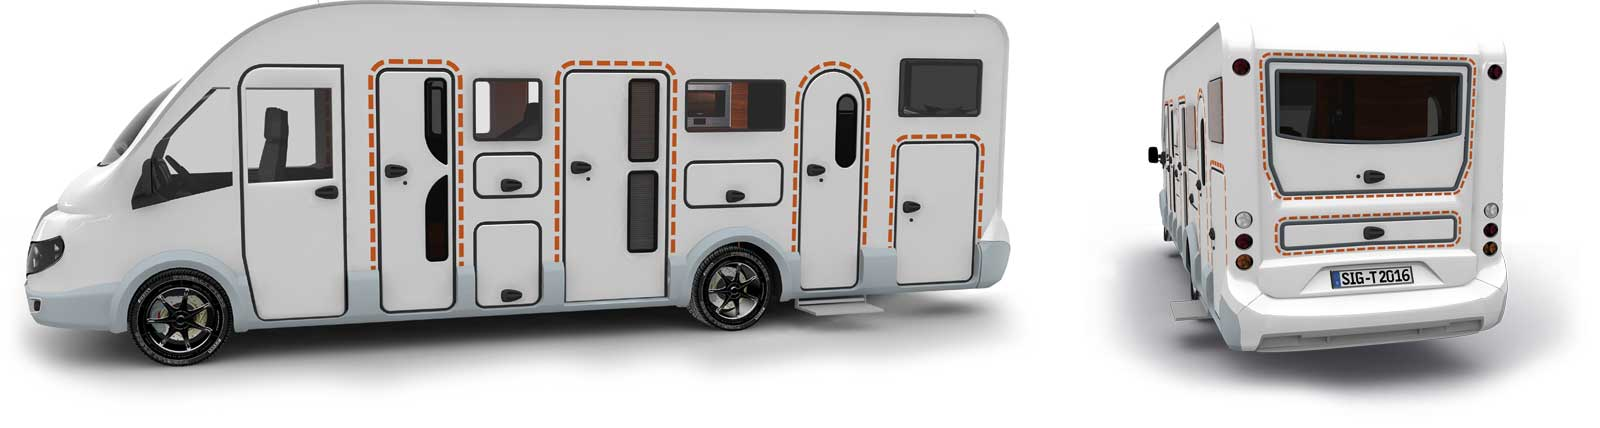 Satisfied tegos customers with Sunlight caravans and RVs